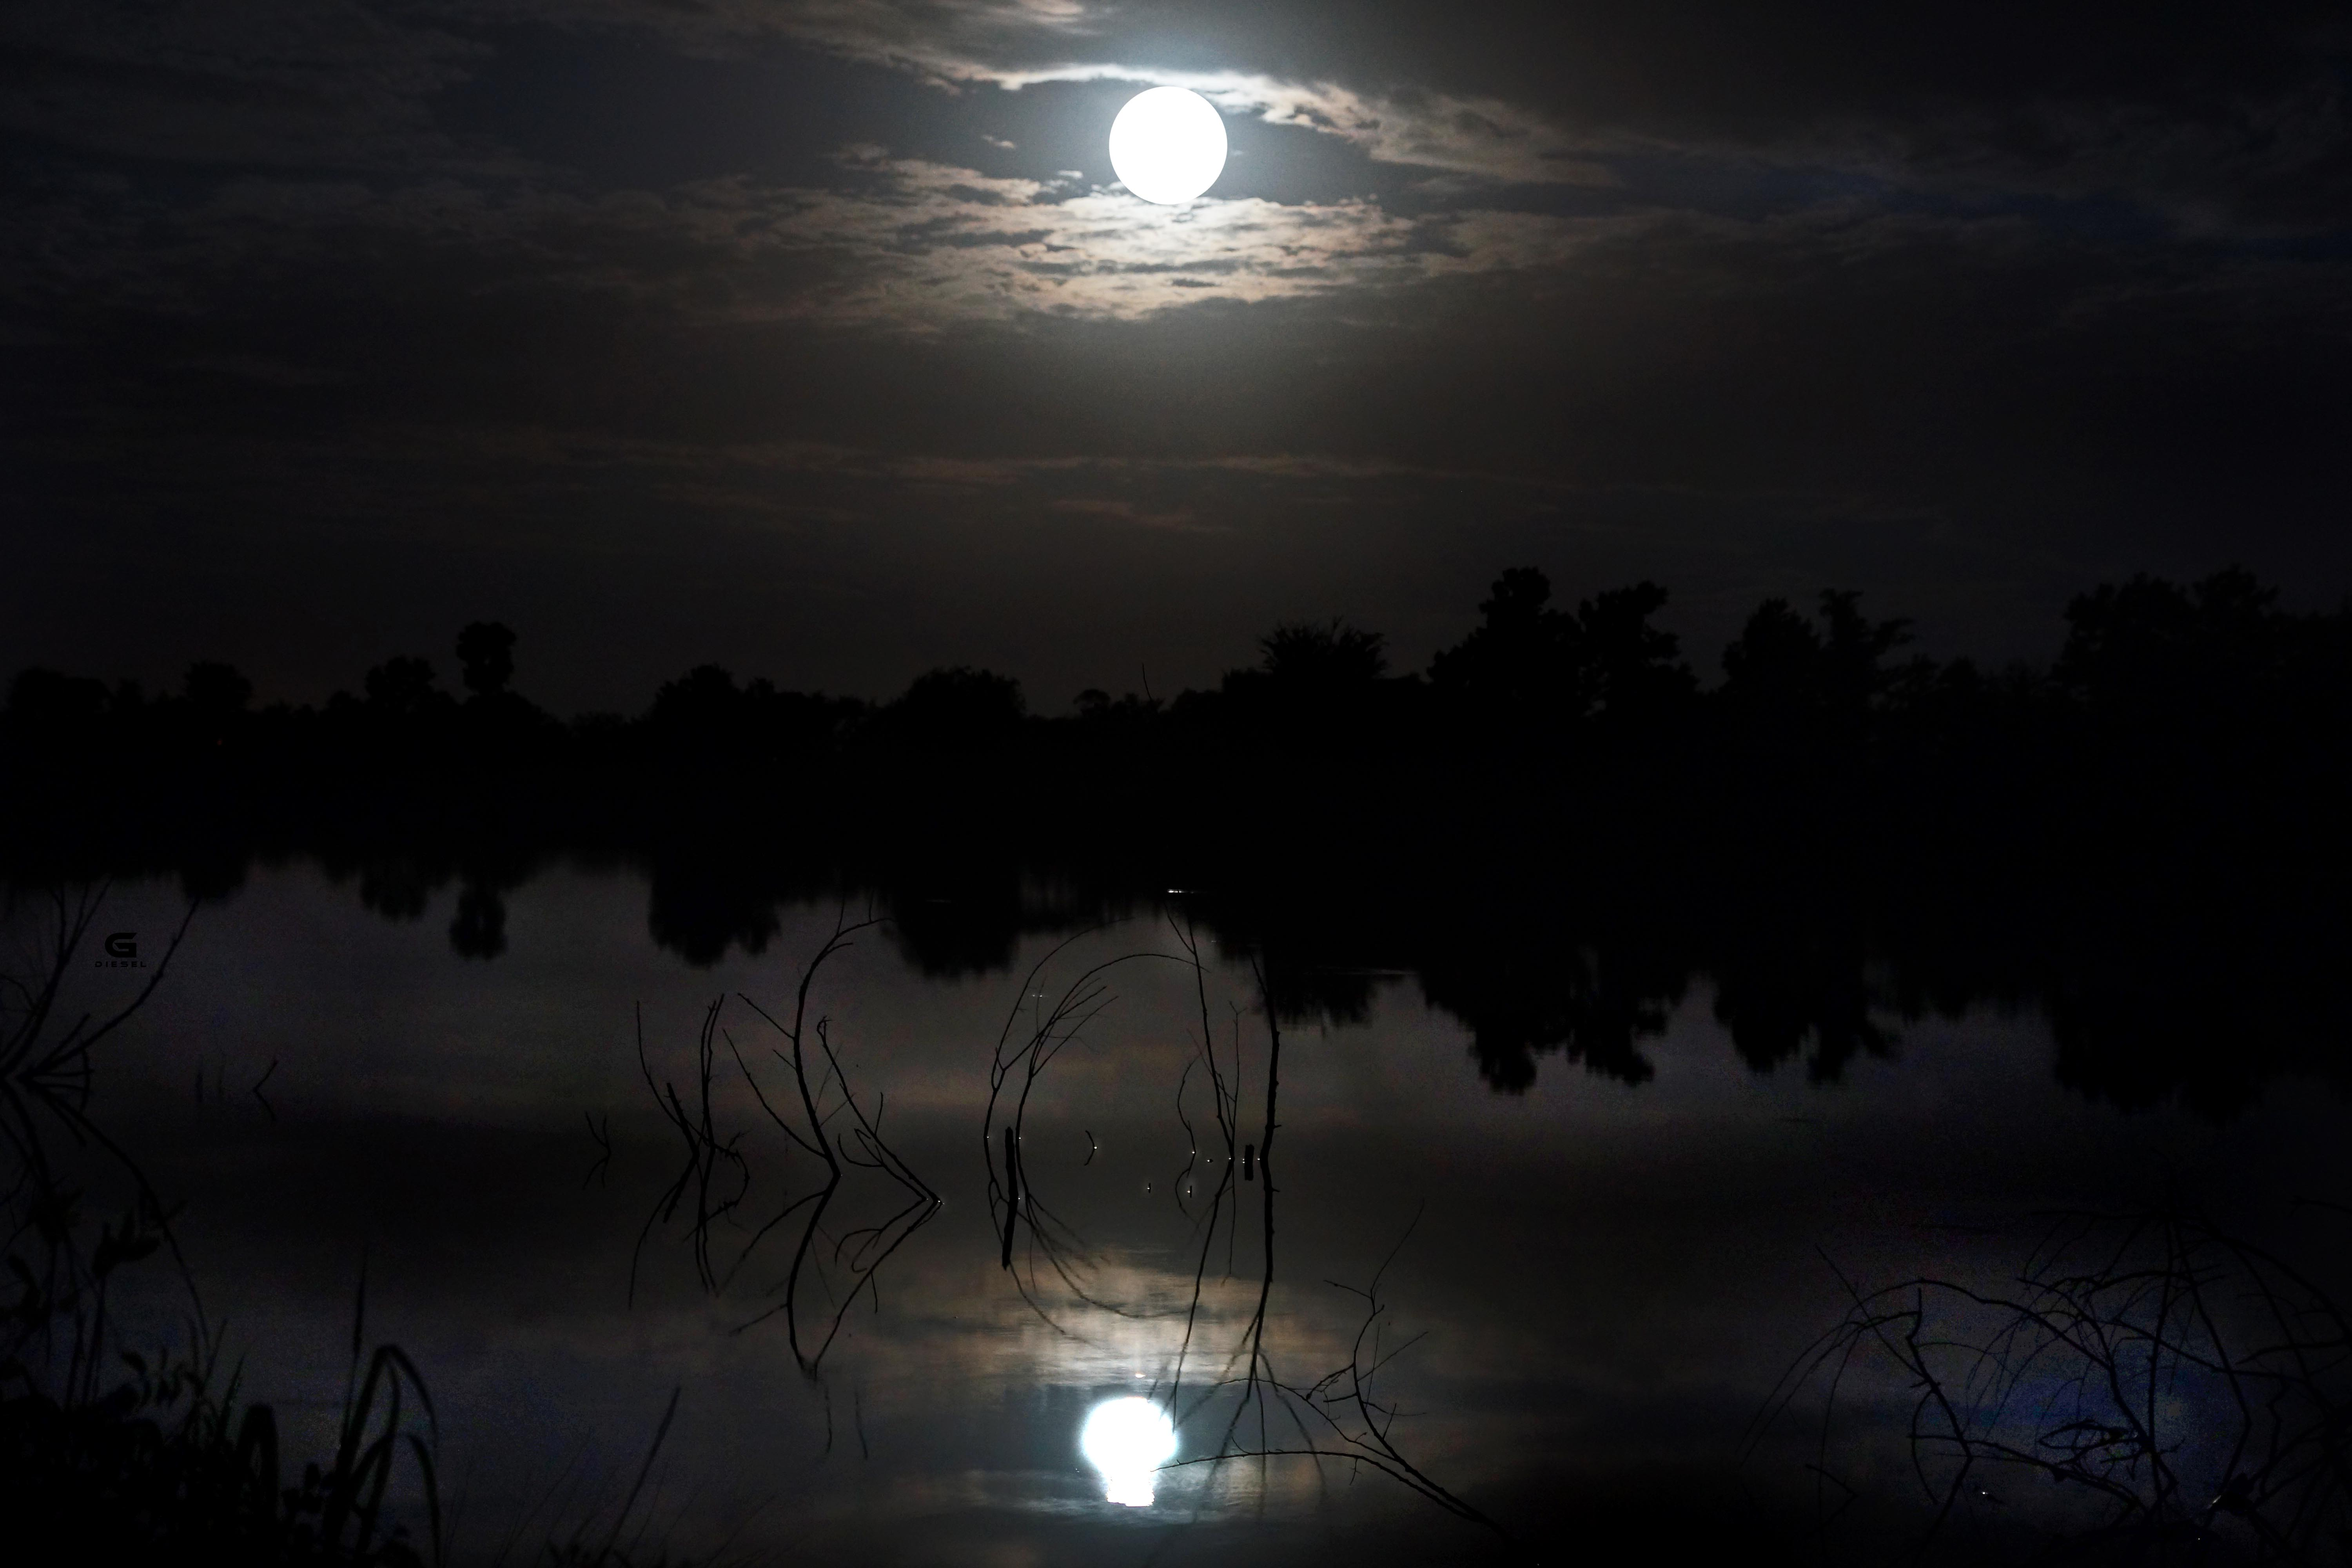 Supermoon and a Lake